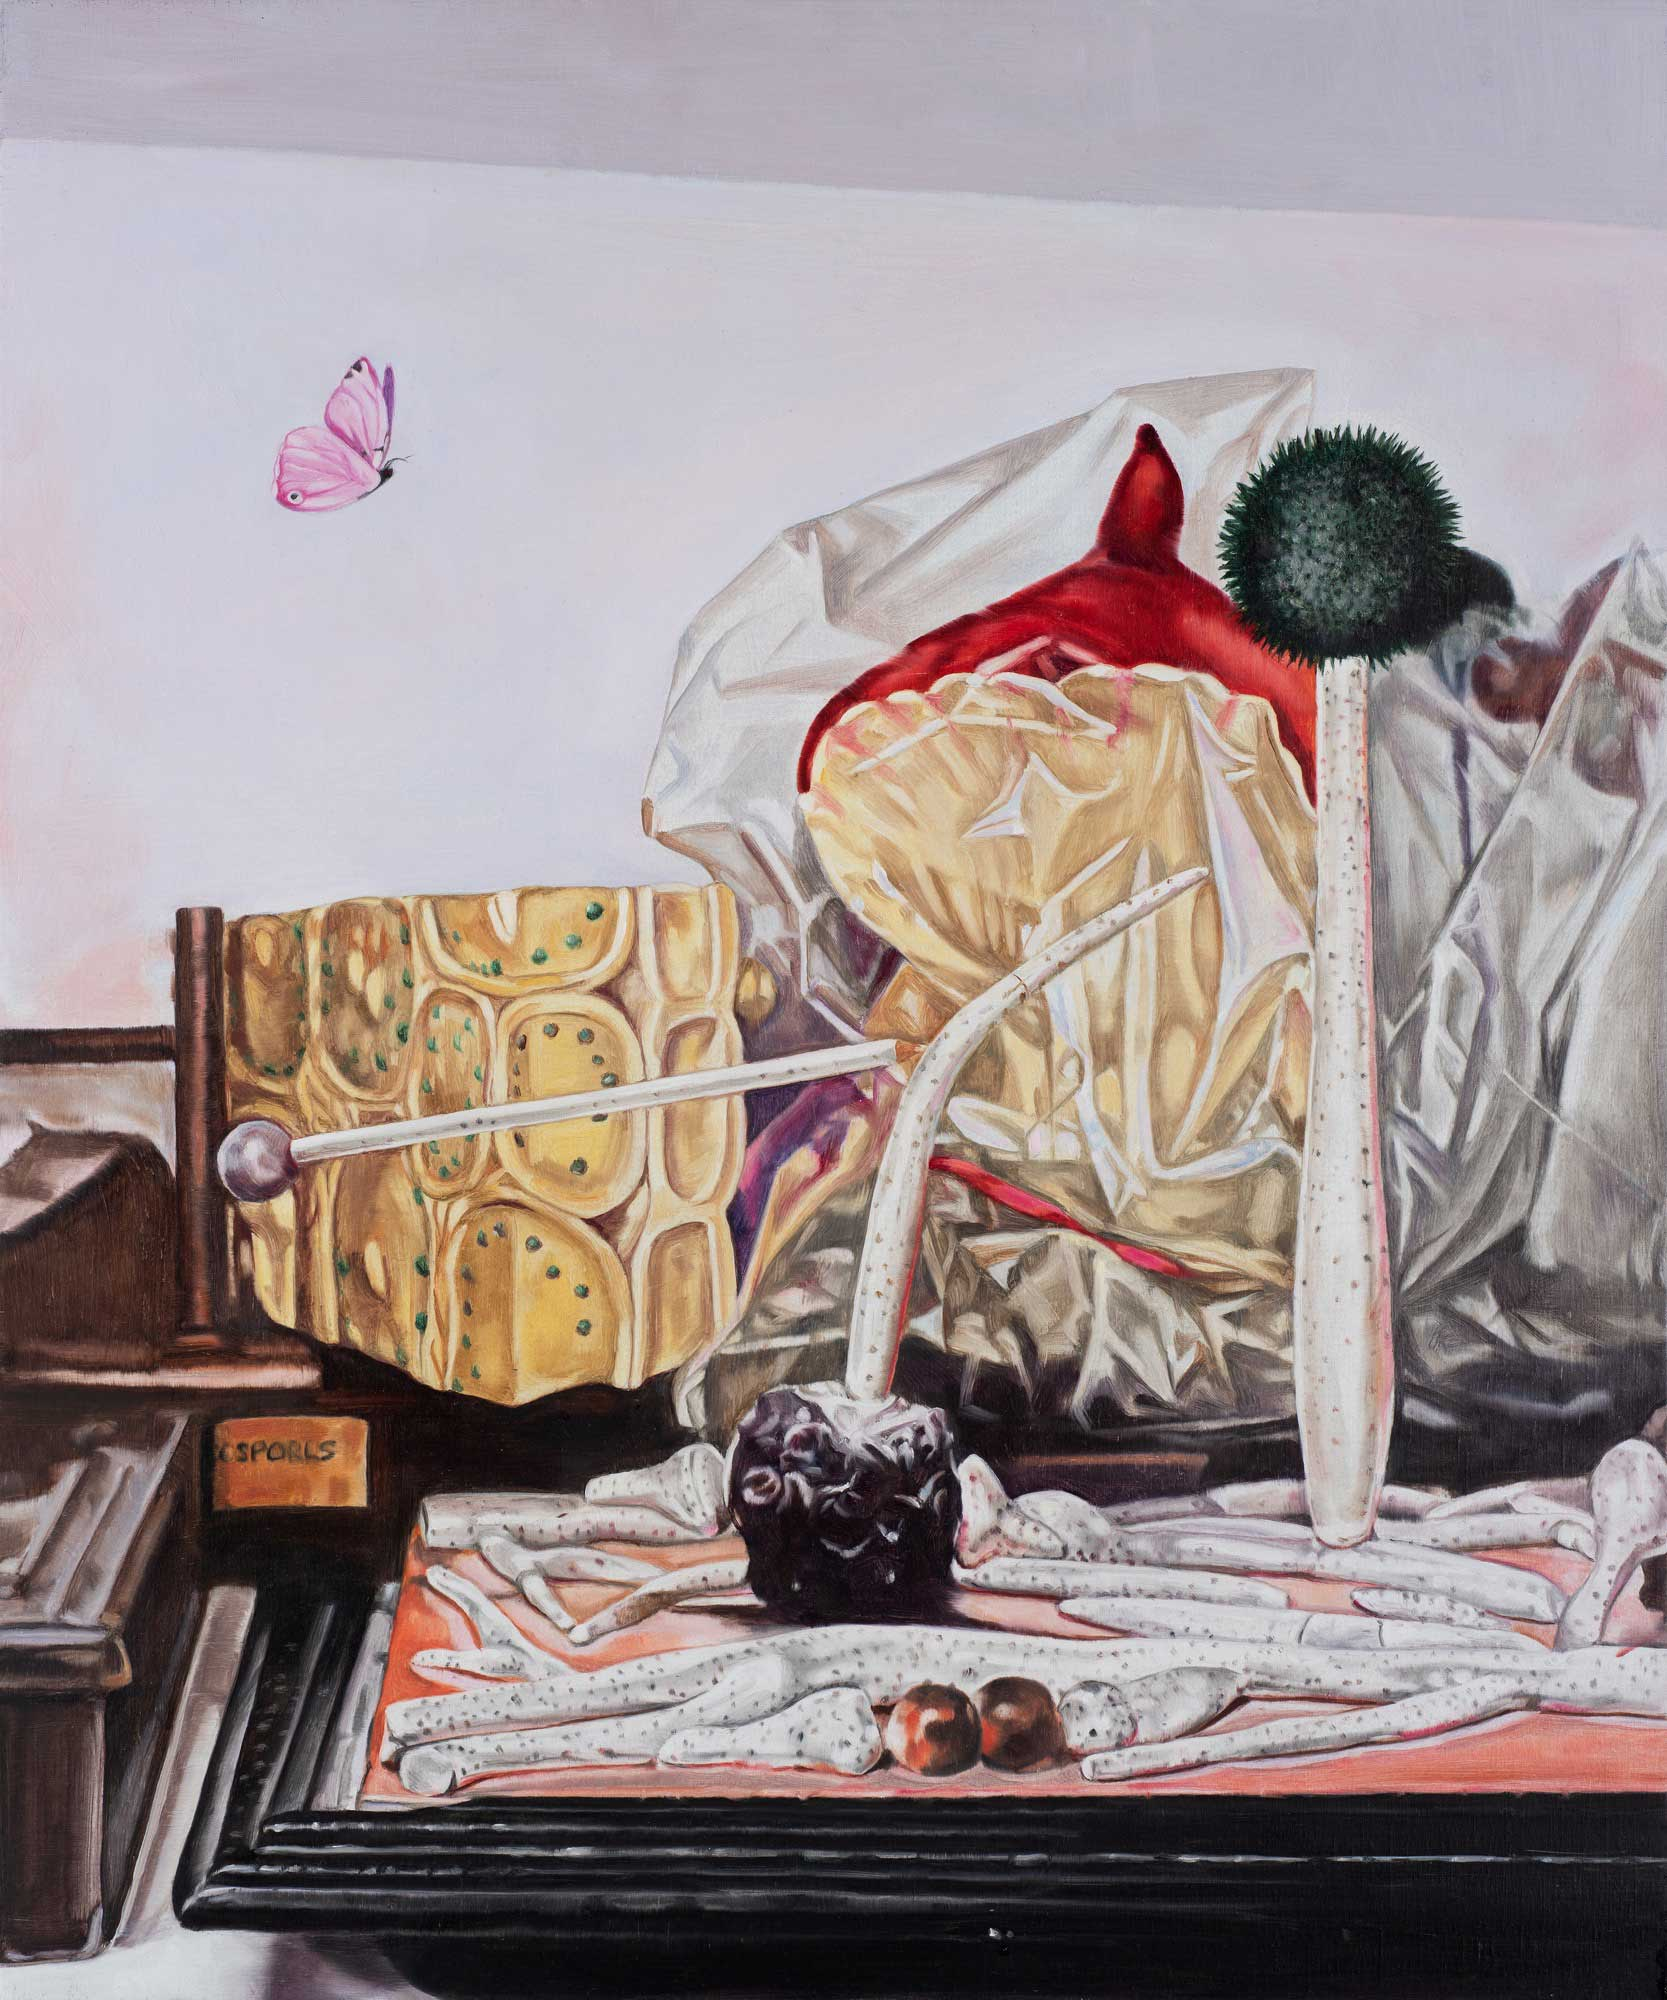 Still life with fungi and butterfly,  2019 66 x 56cm oil on linen